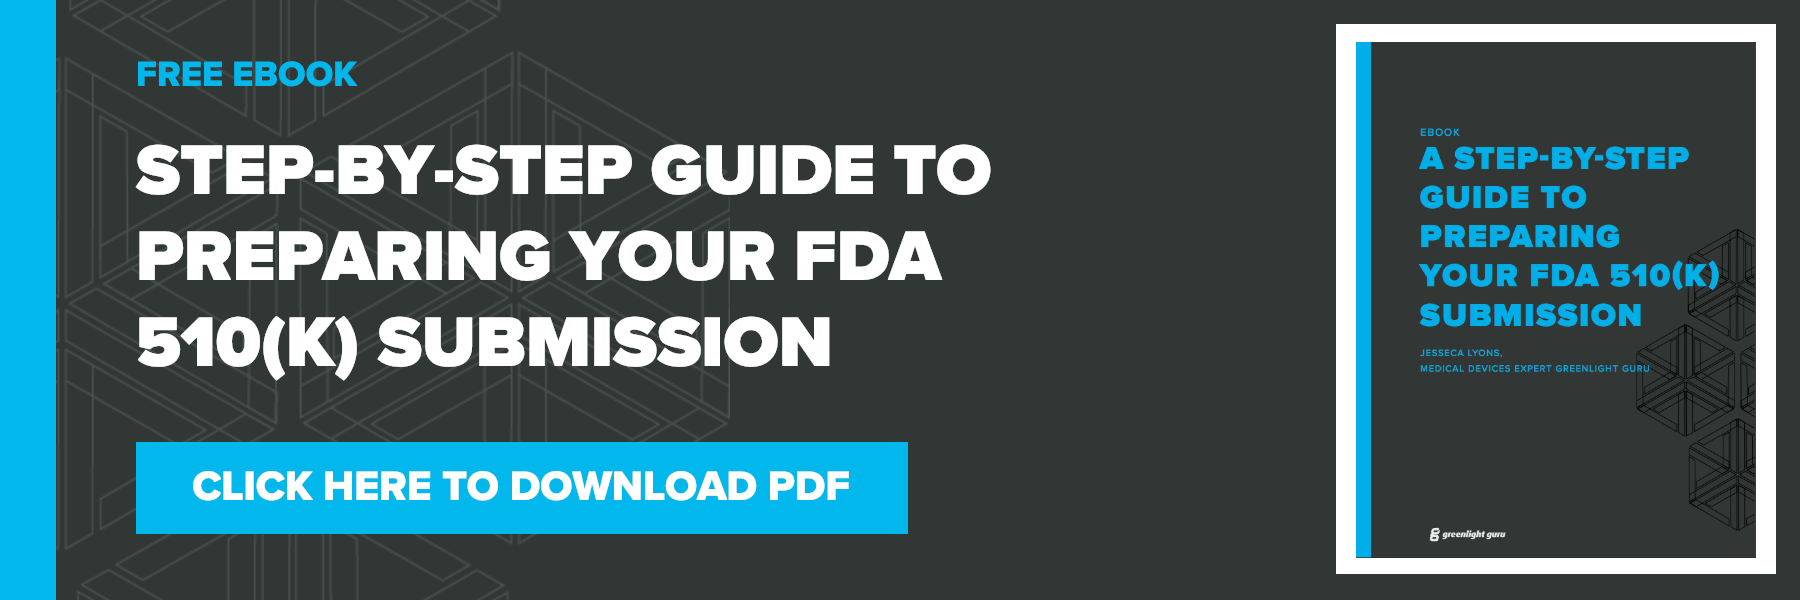 steps for how to prepare for 510(k) submission for medical devices PDF download